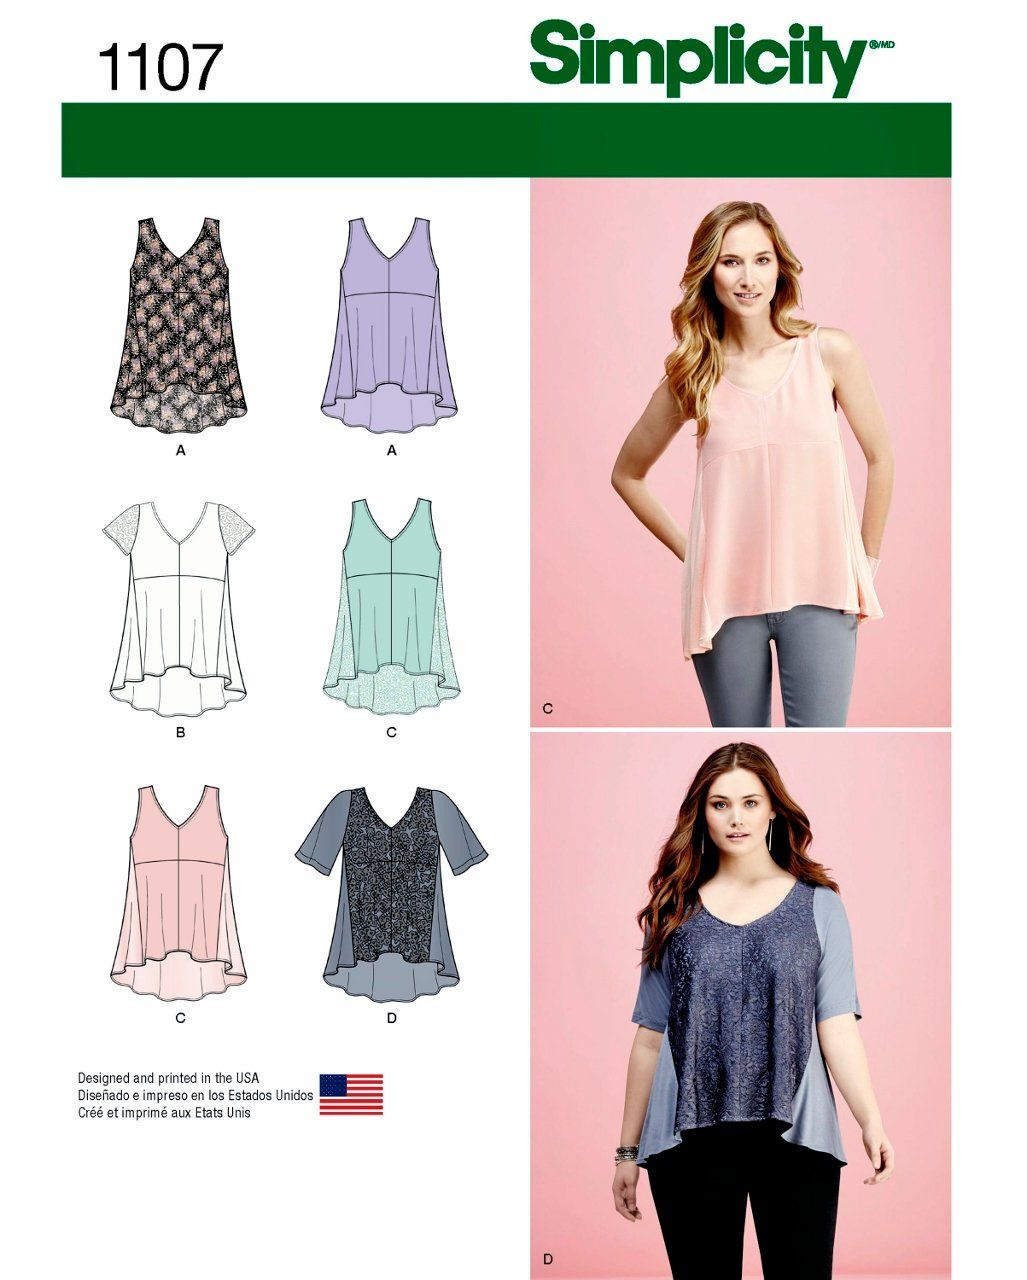 Pullover Tops Pattern Loose Fitting Tops Pattern High Low Tops Pattern Sz 4 To 26 Simplicity Sewi Sewing Top Top Sewing Pattern Simplicity Sewing Patterns